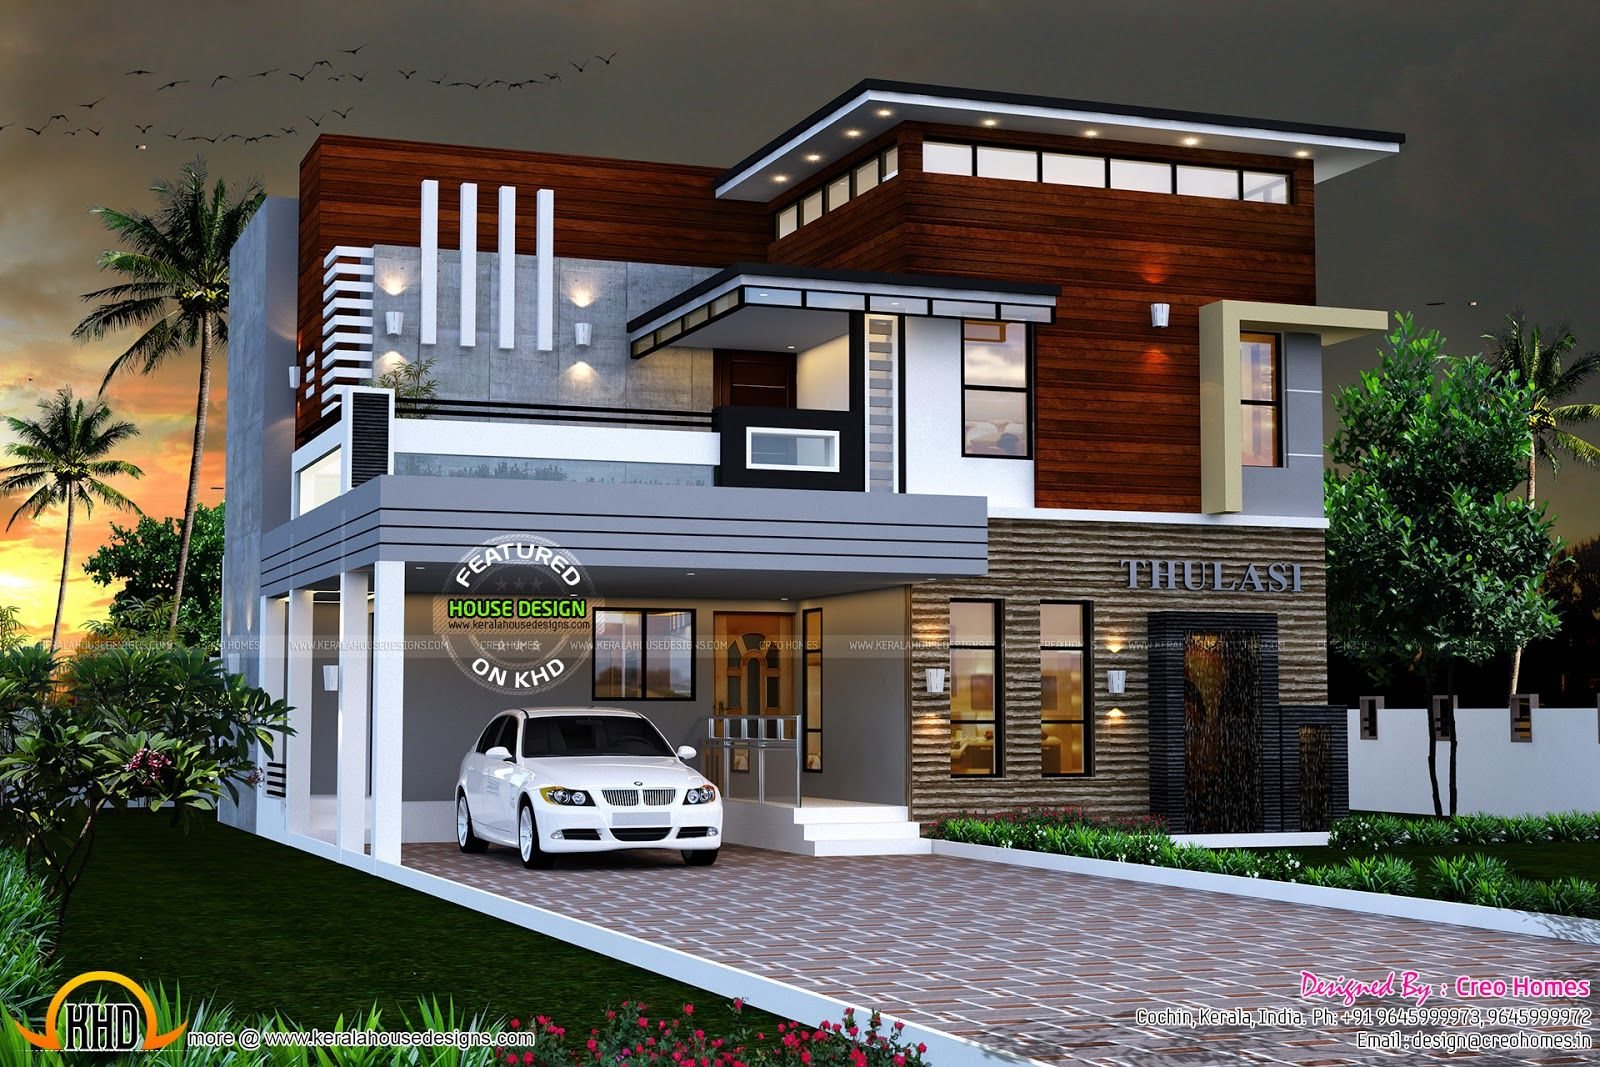 Eterior design modern small house architecture building for Design of building house